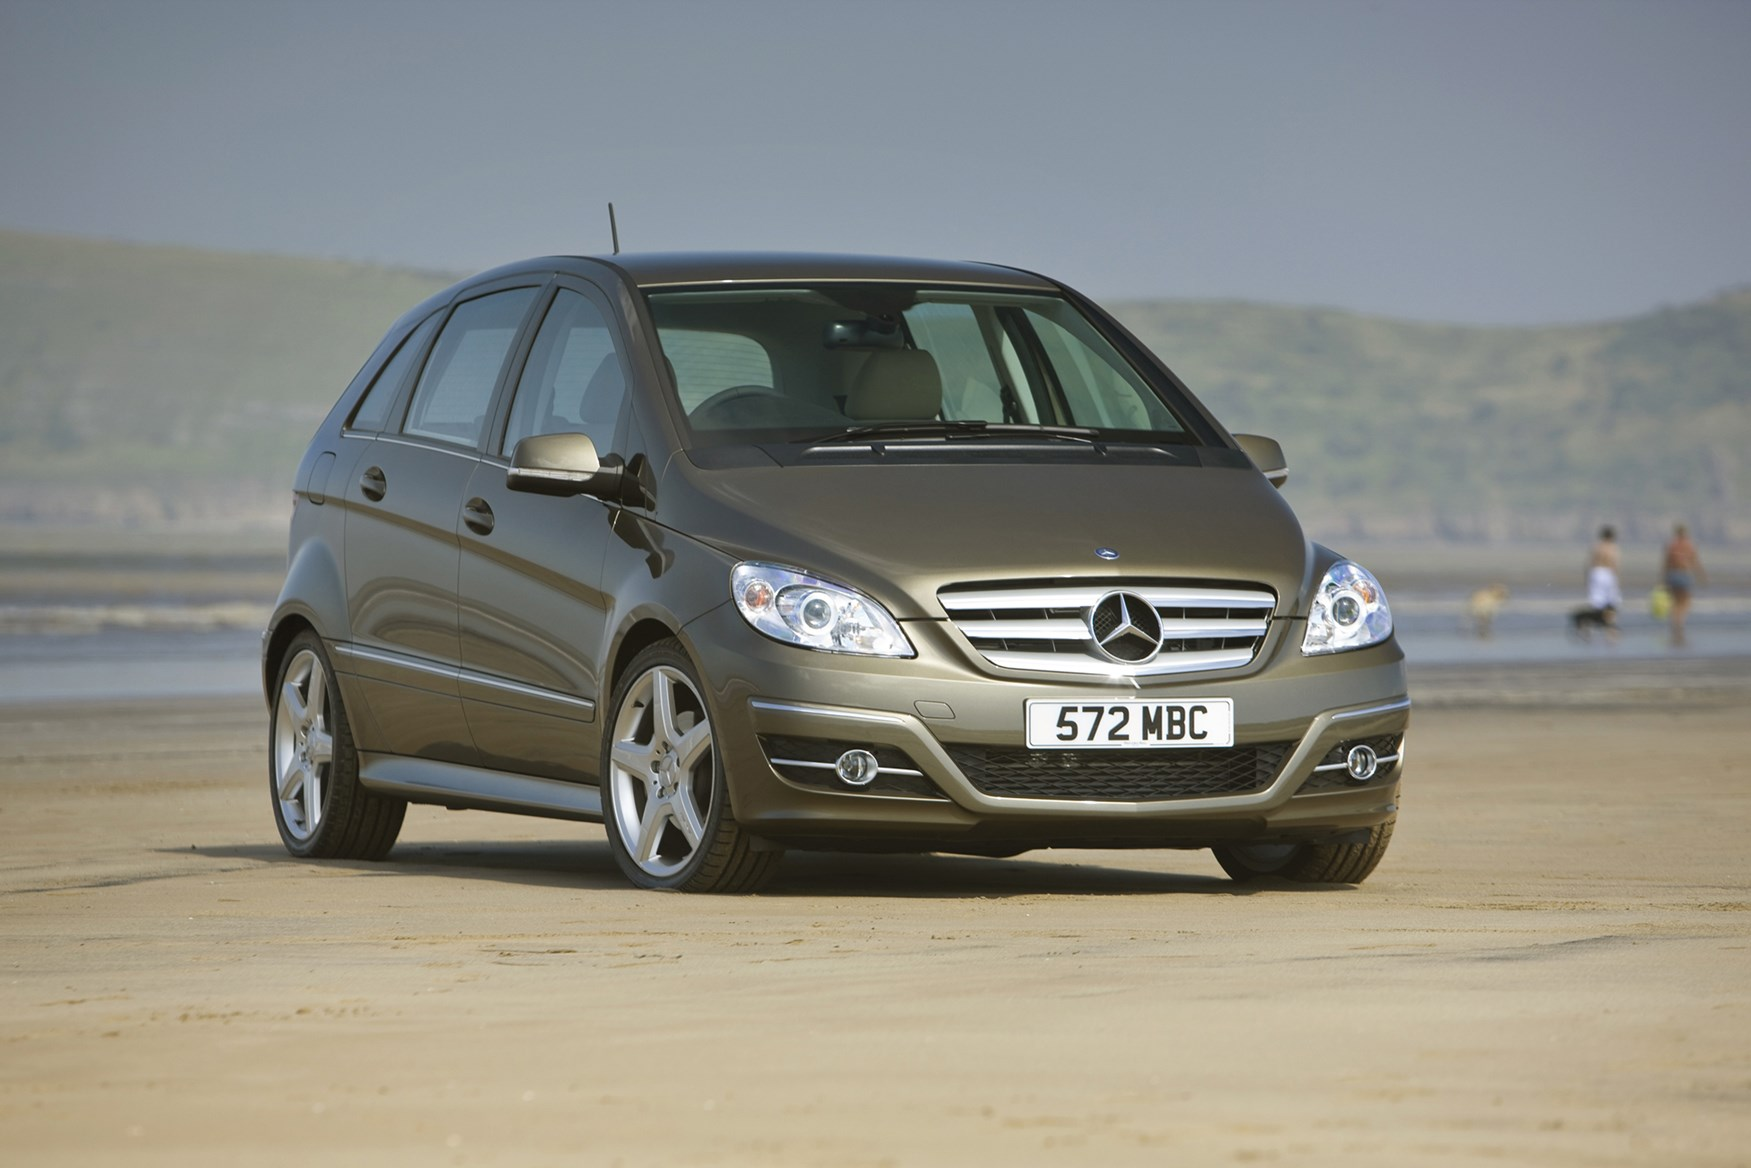 Mercedes benz b class hatchback review 2005 2011 parkers for Mercedes benz bclass